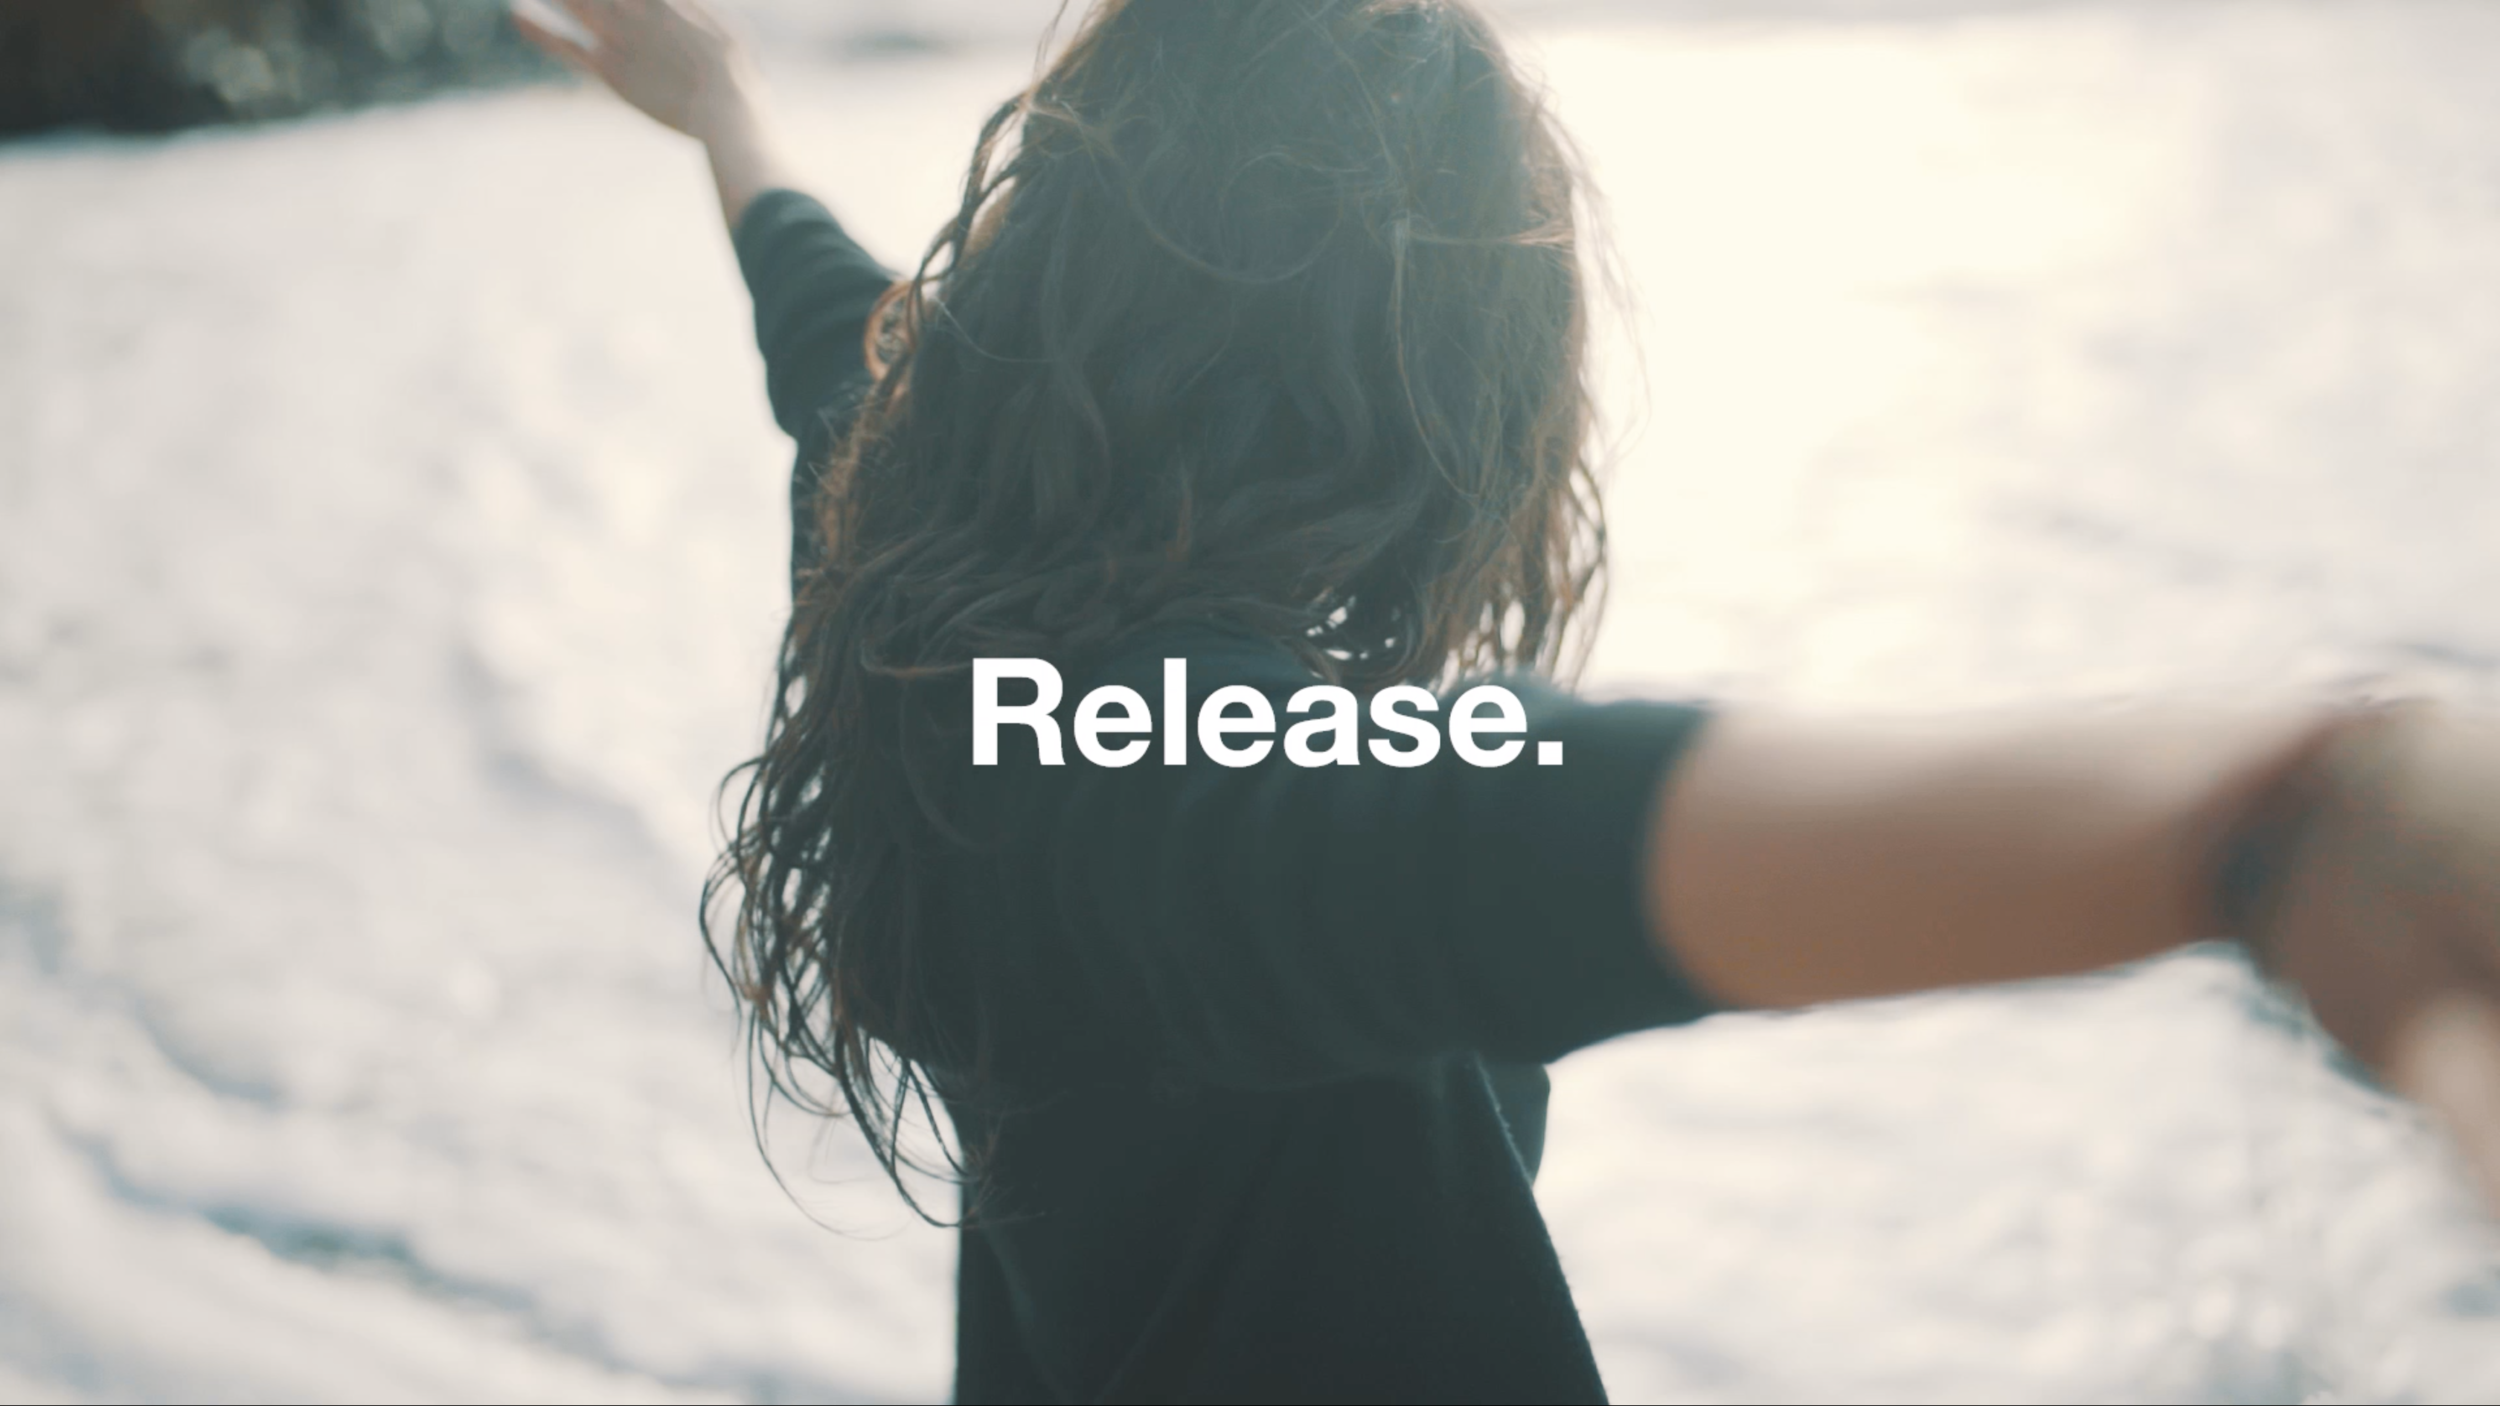 COURAGE - A series of short form videos for Courage Adventure to advertise their retreat packages in Portugal. Edited with heightened sound design and gorgeous footage to create textured videos for use across all online platforms.Edit, Sound & Grade : Tilly HK